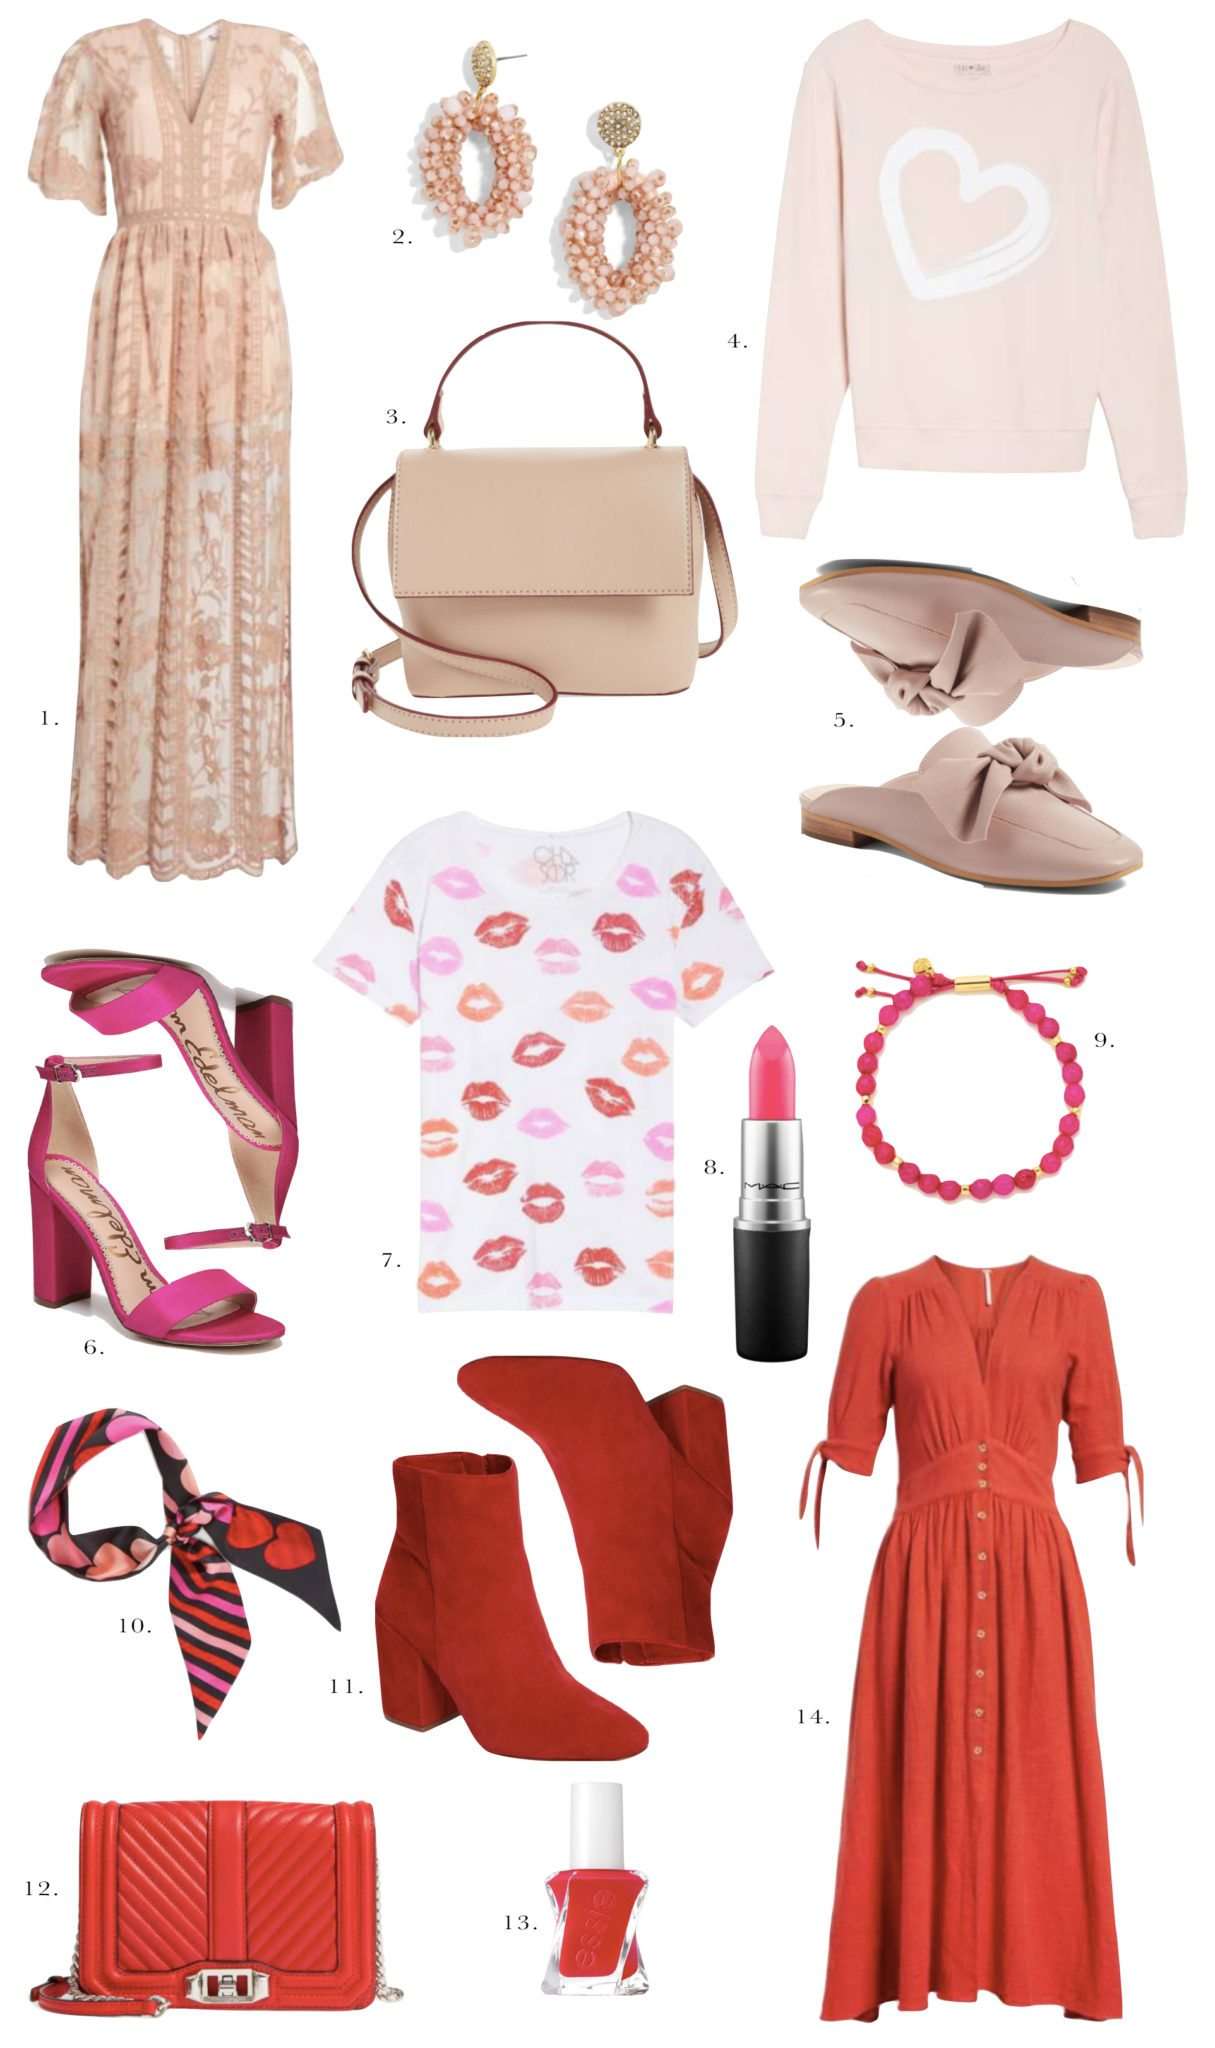 IN THE MOOD FOR PINK AND RED